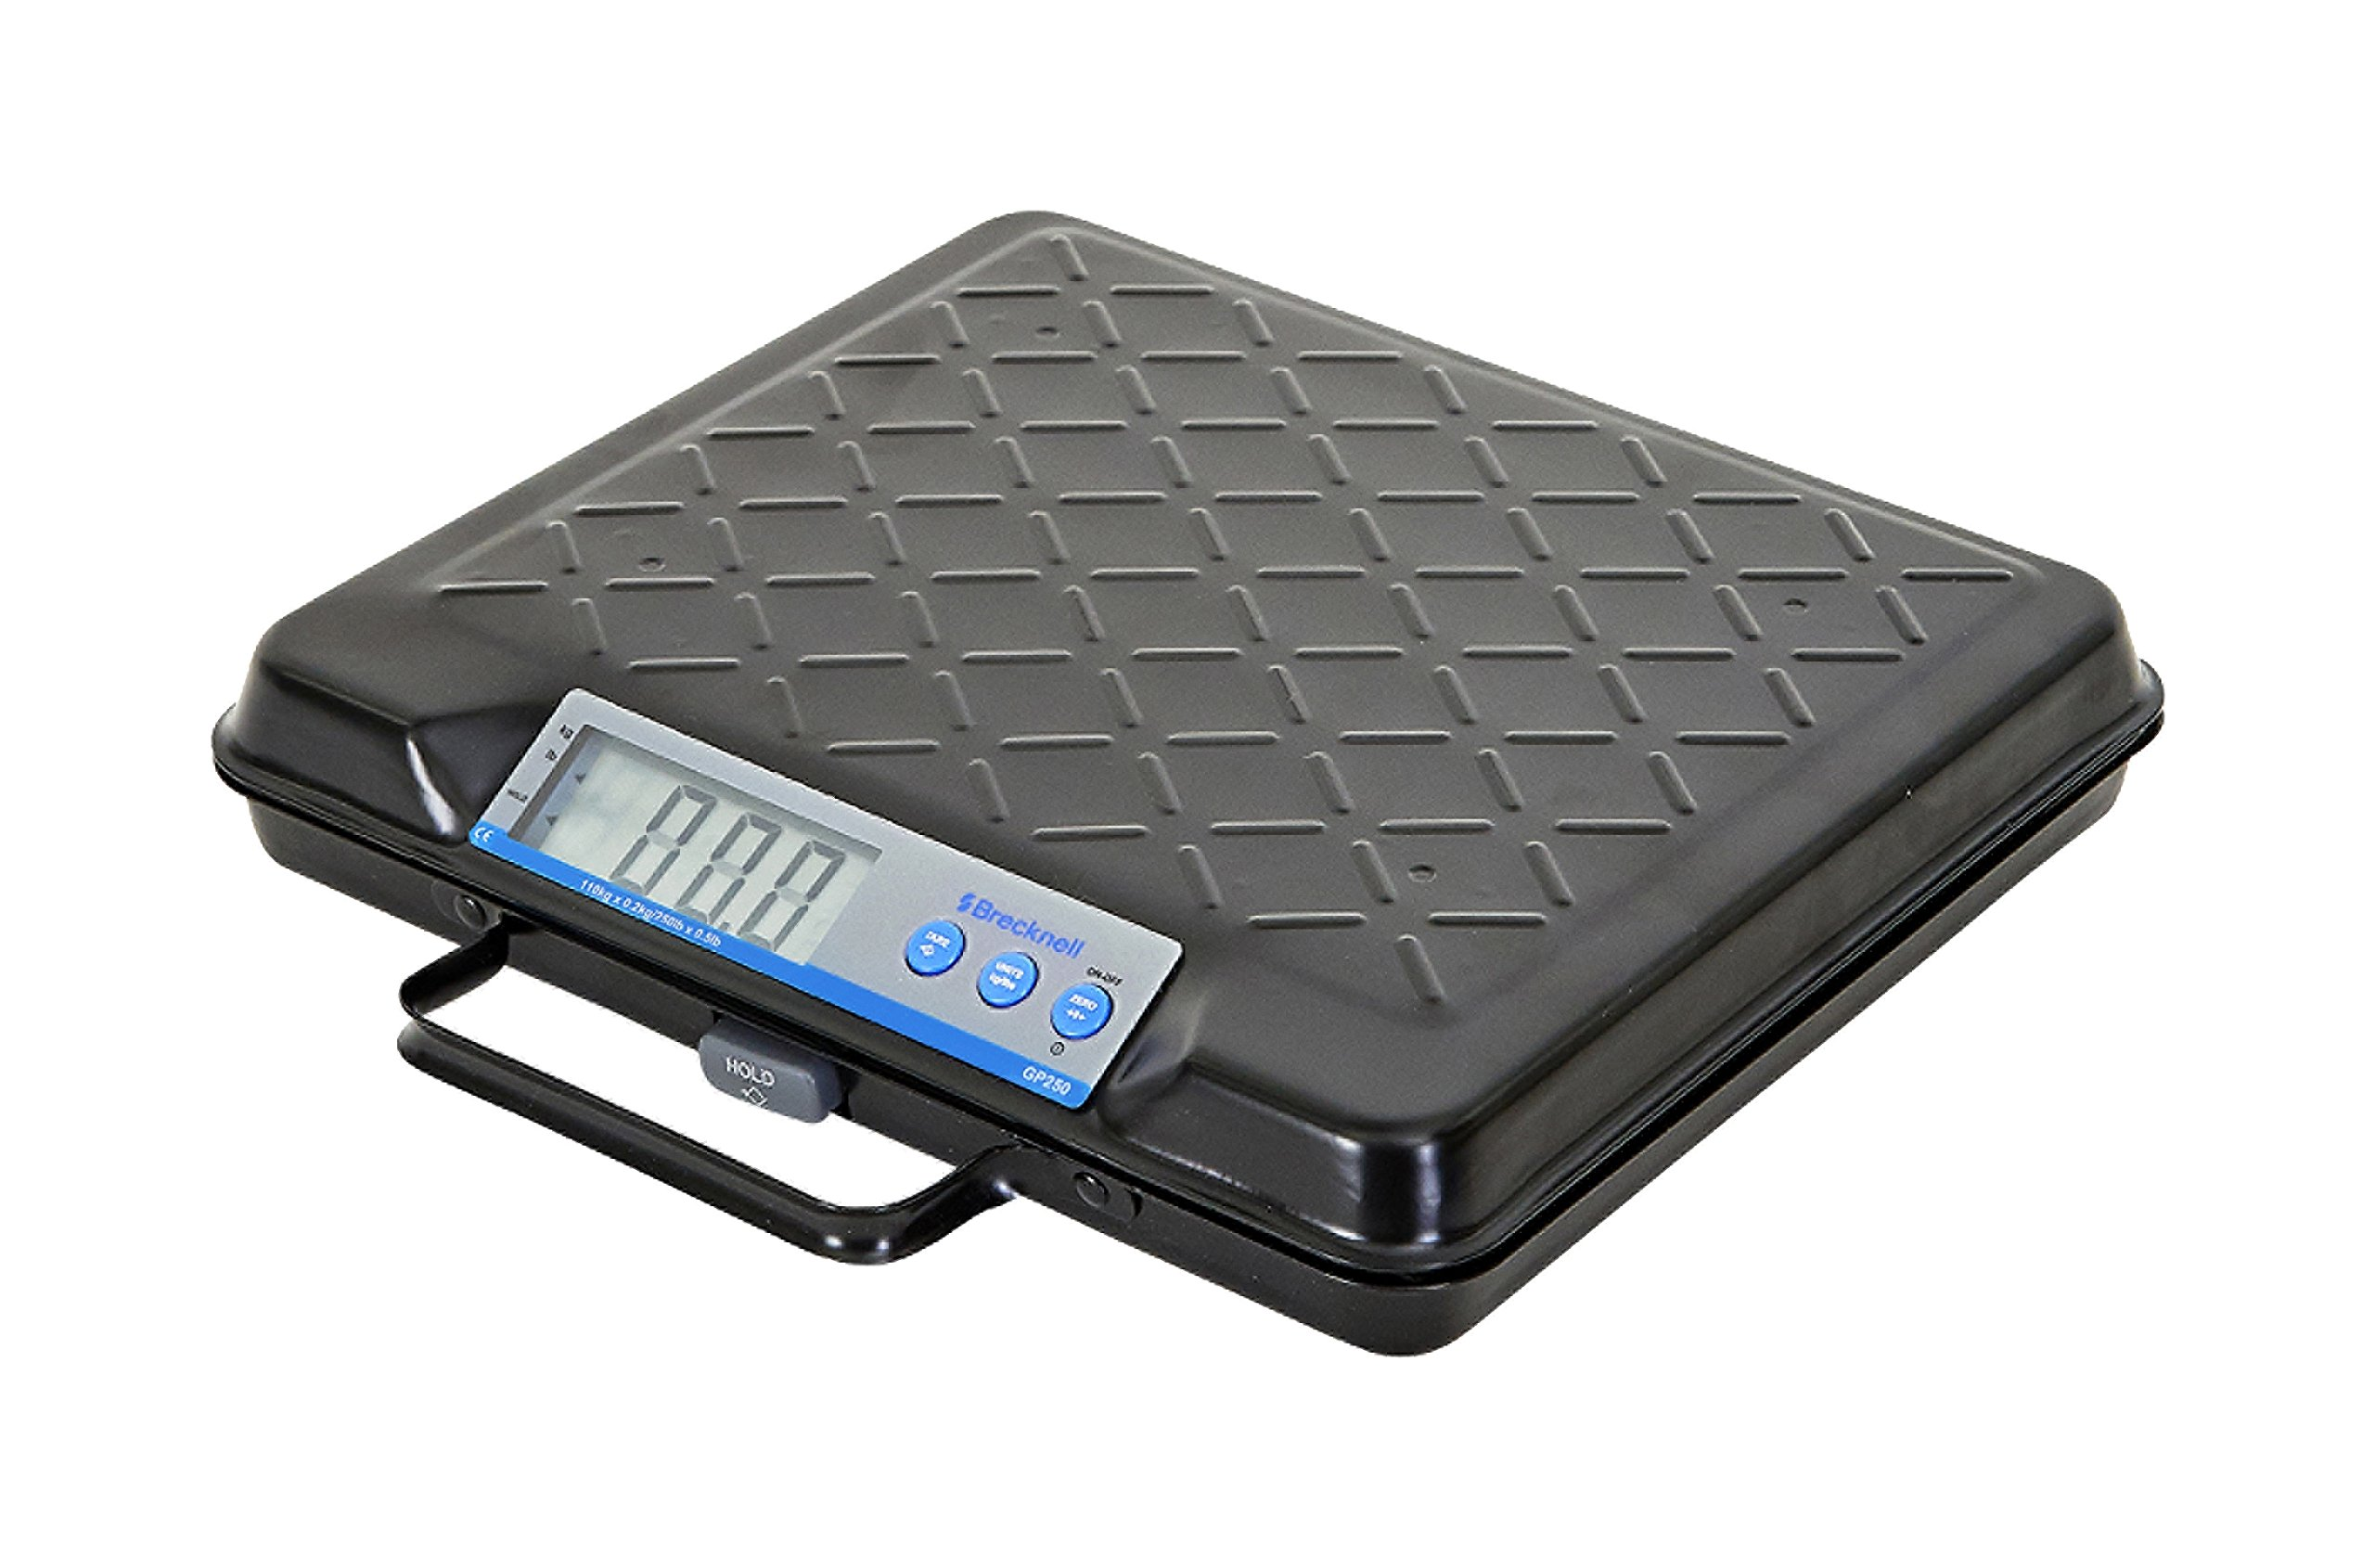 Brecknell GP100 USB Electronic General Purpose Bench Scale, 100LB Capacity, Portable, Internal Backlit Display, USB COM Port by Brecknell